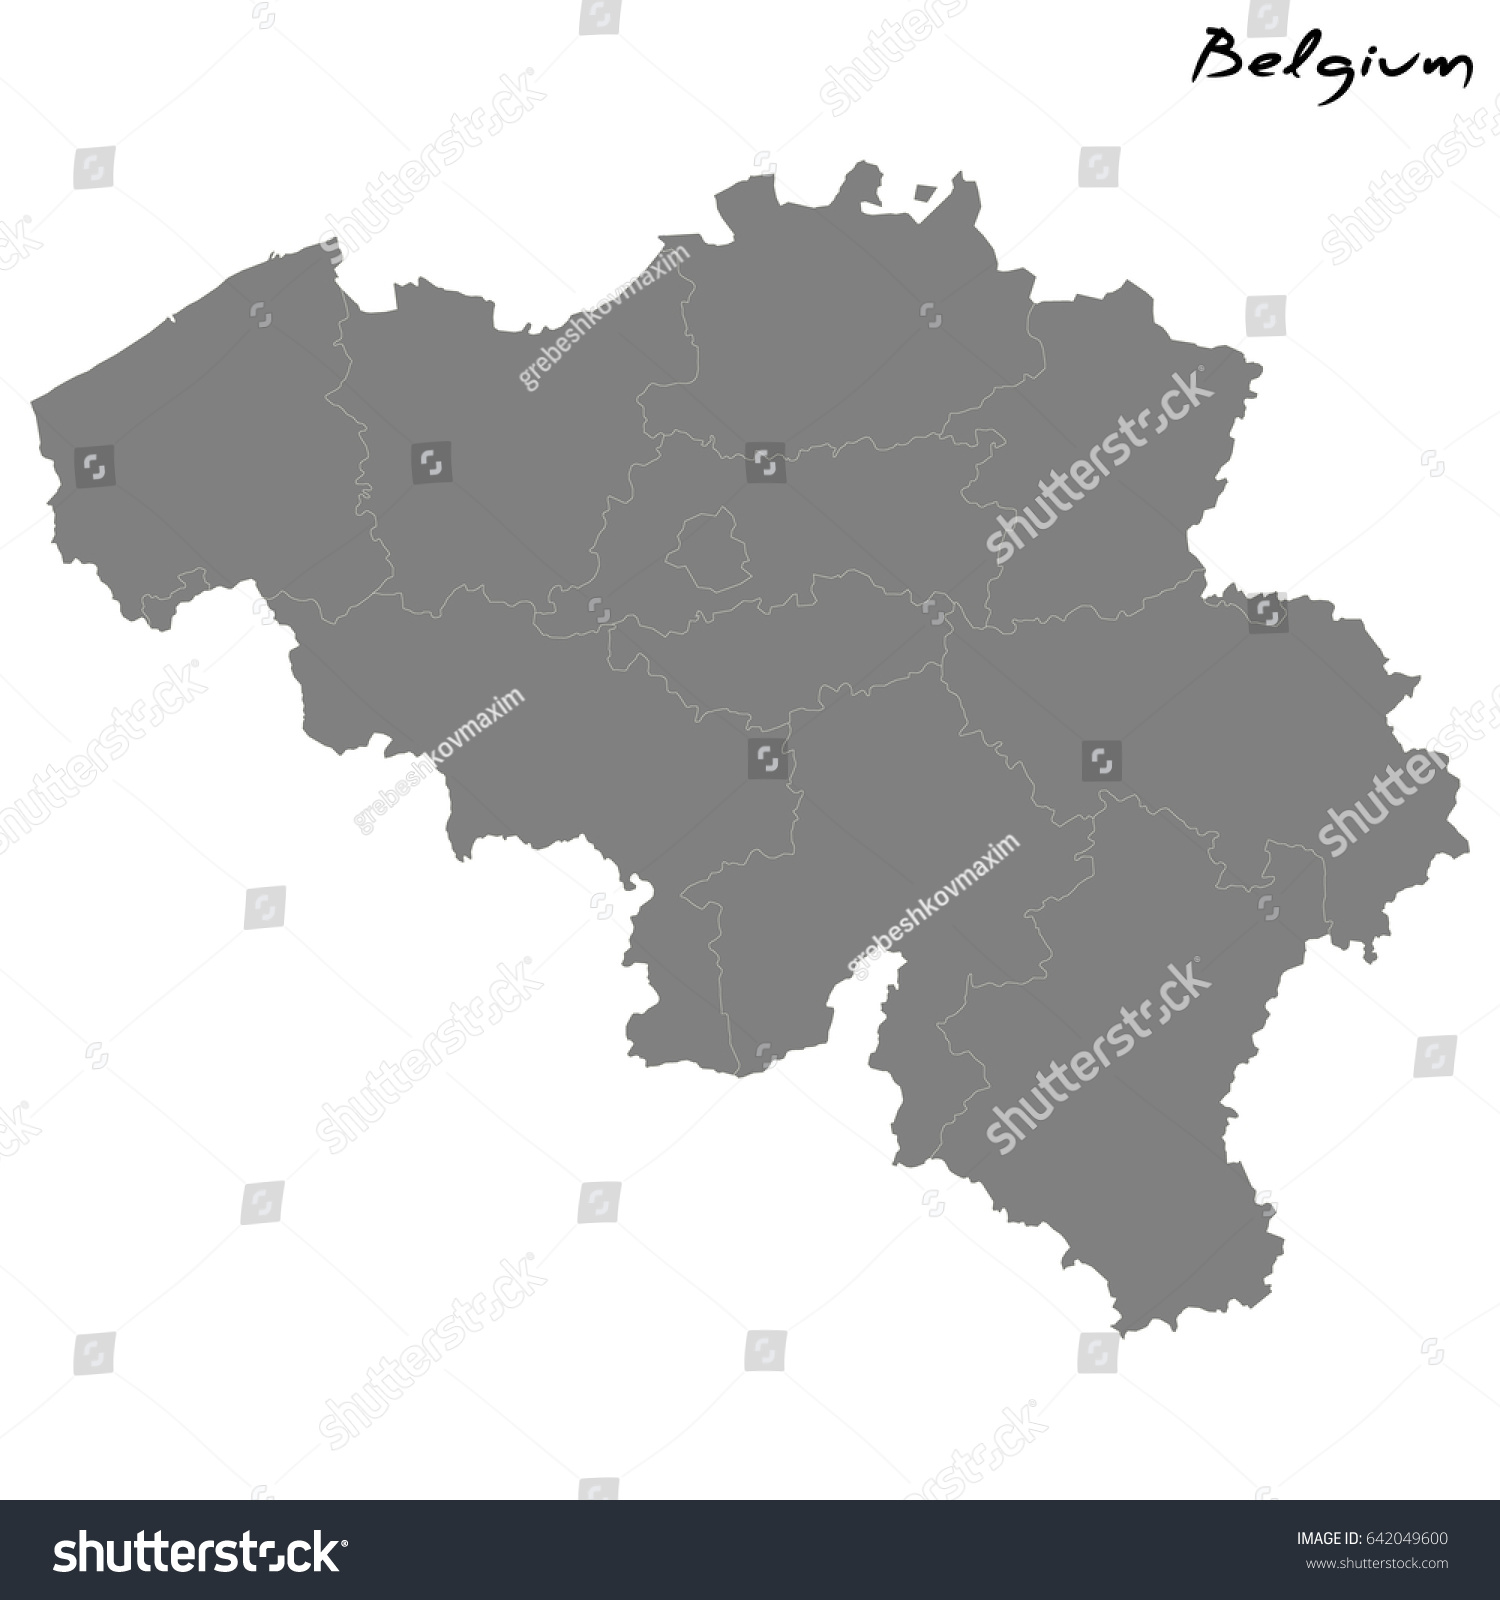 high quality map of belgium with borders of the regions